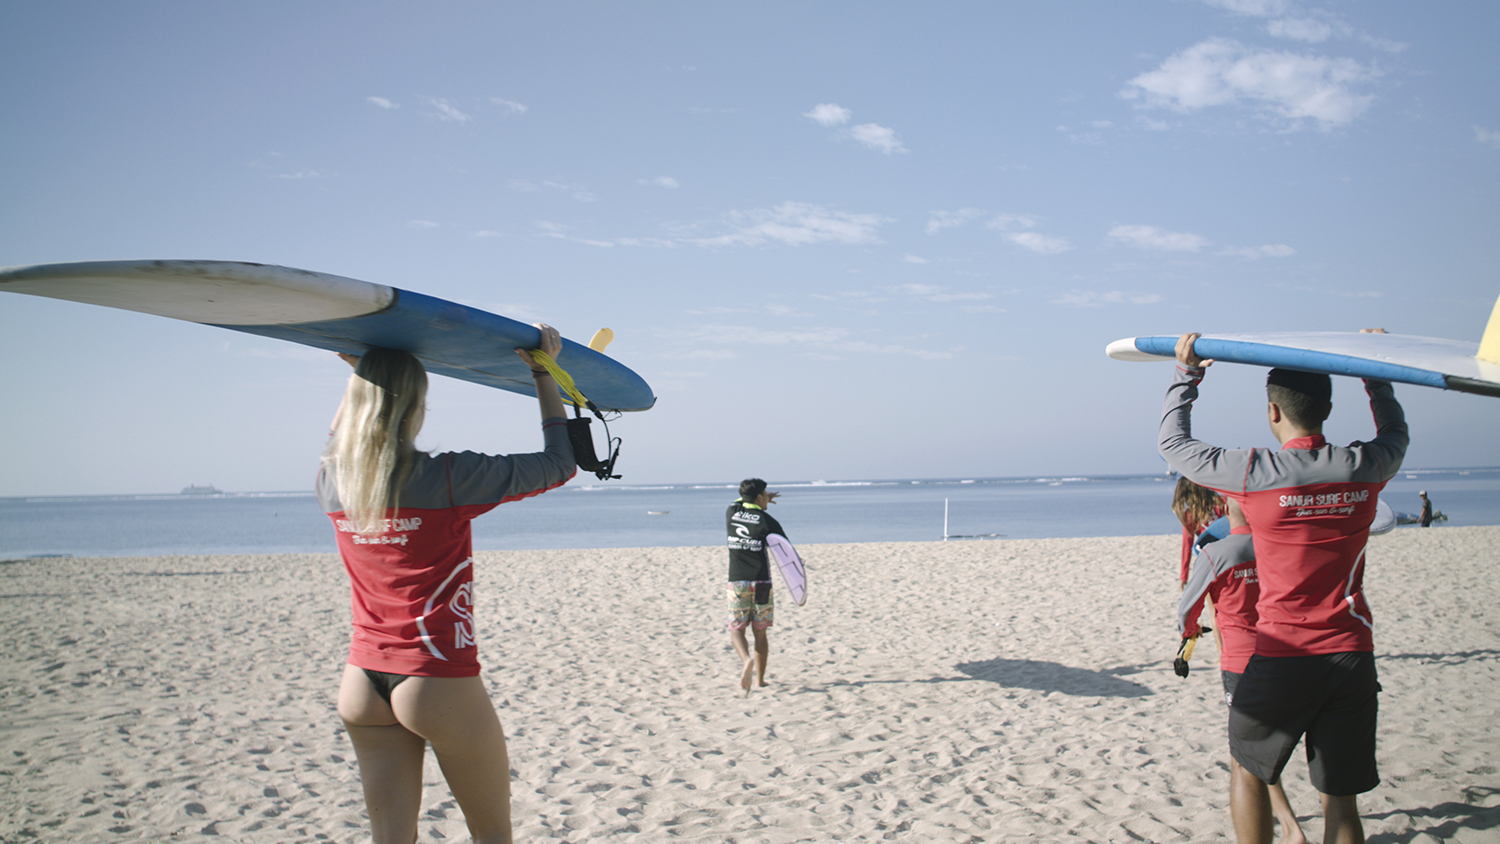 Surfers carrying their surf boards, led by an instructor